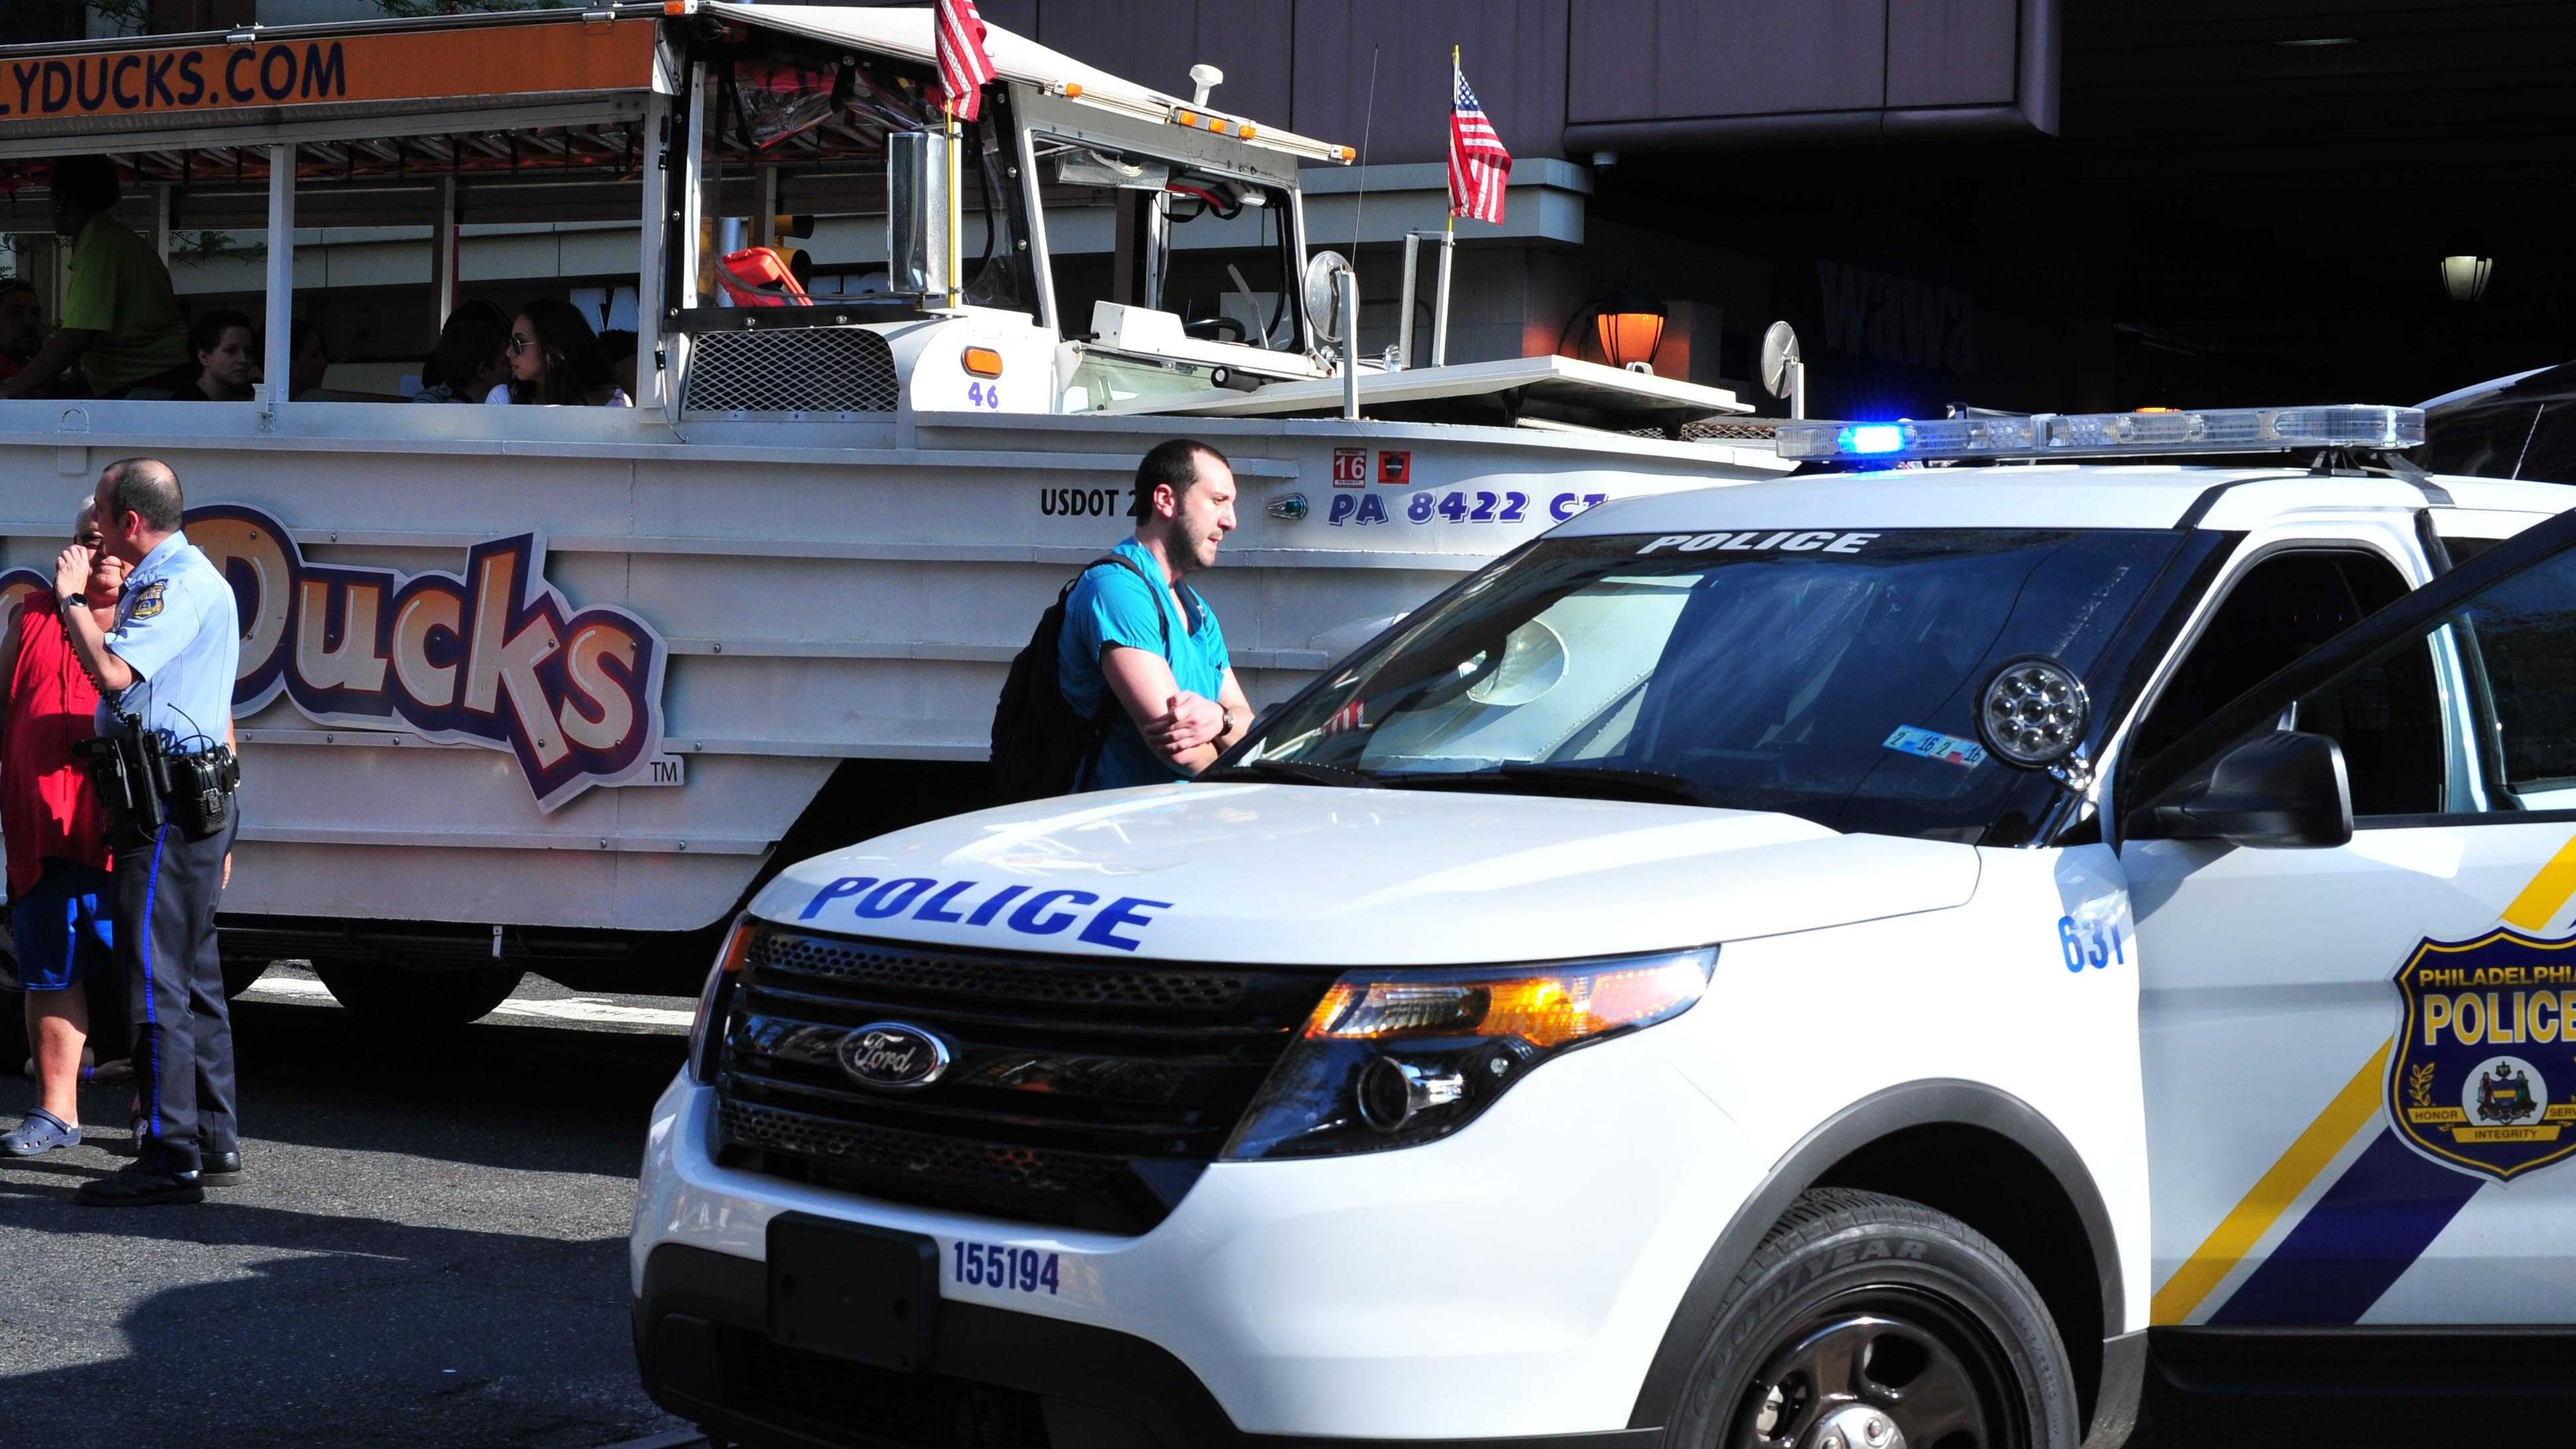 A Philadelphia police officer, left, interviews the husband of a victim who was struck and killed by a Duck Boat near the Philadelphia Convention Center. Police say a Ride the Ducks trolley ran over the woman Friday evening in the Chinatown neighborhood.